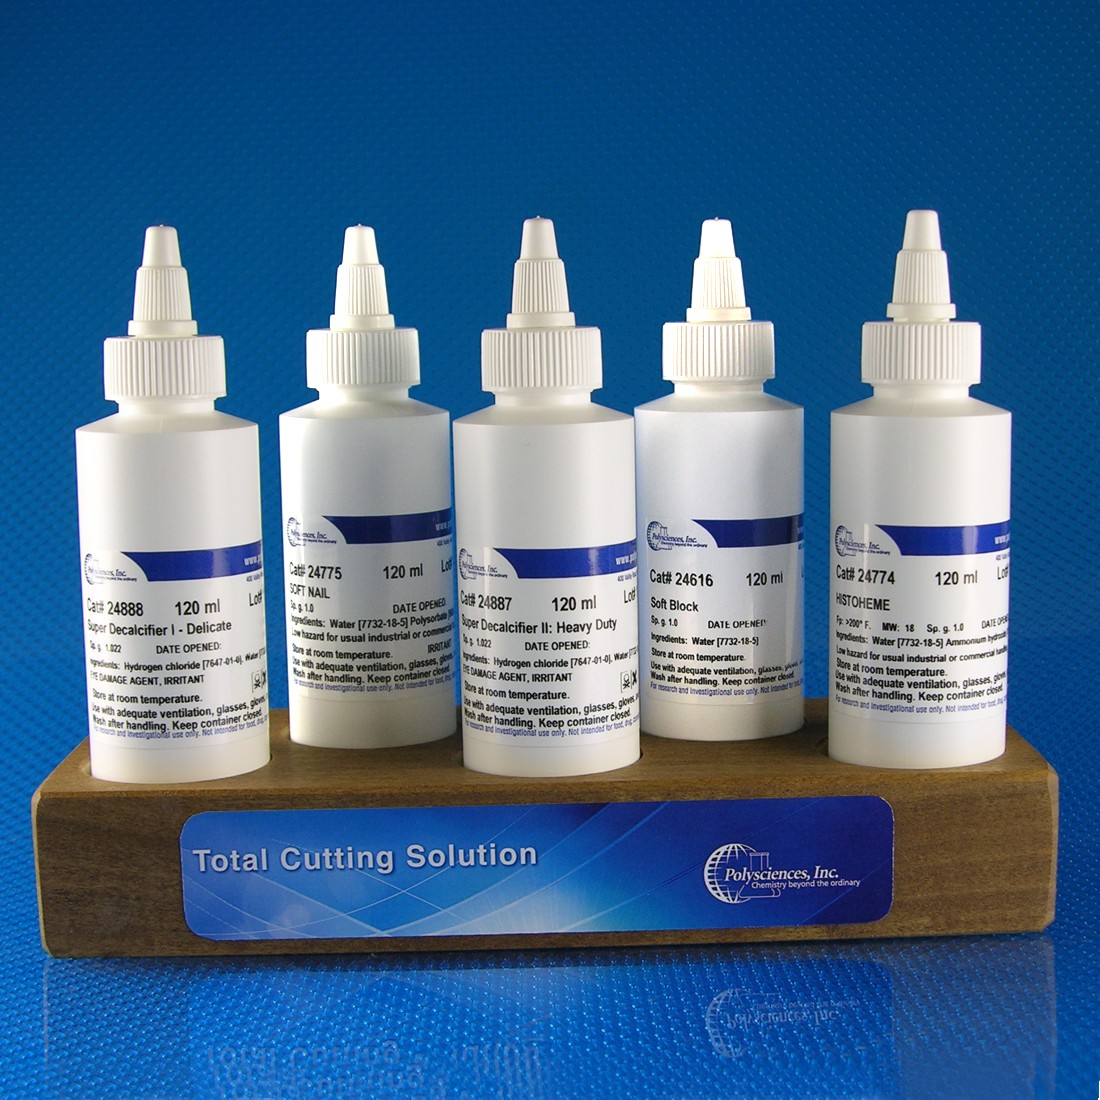 Total Cutting Solution Kit